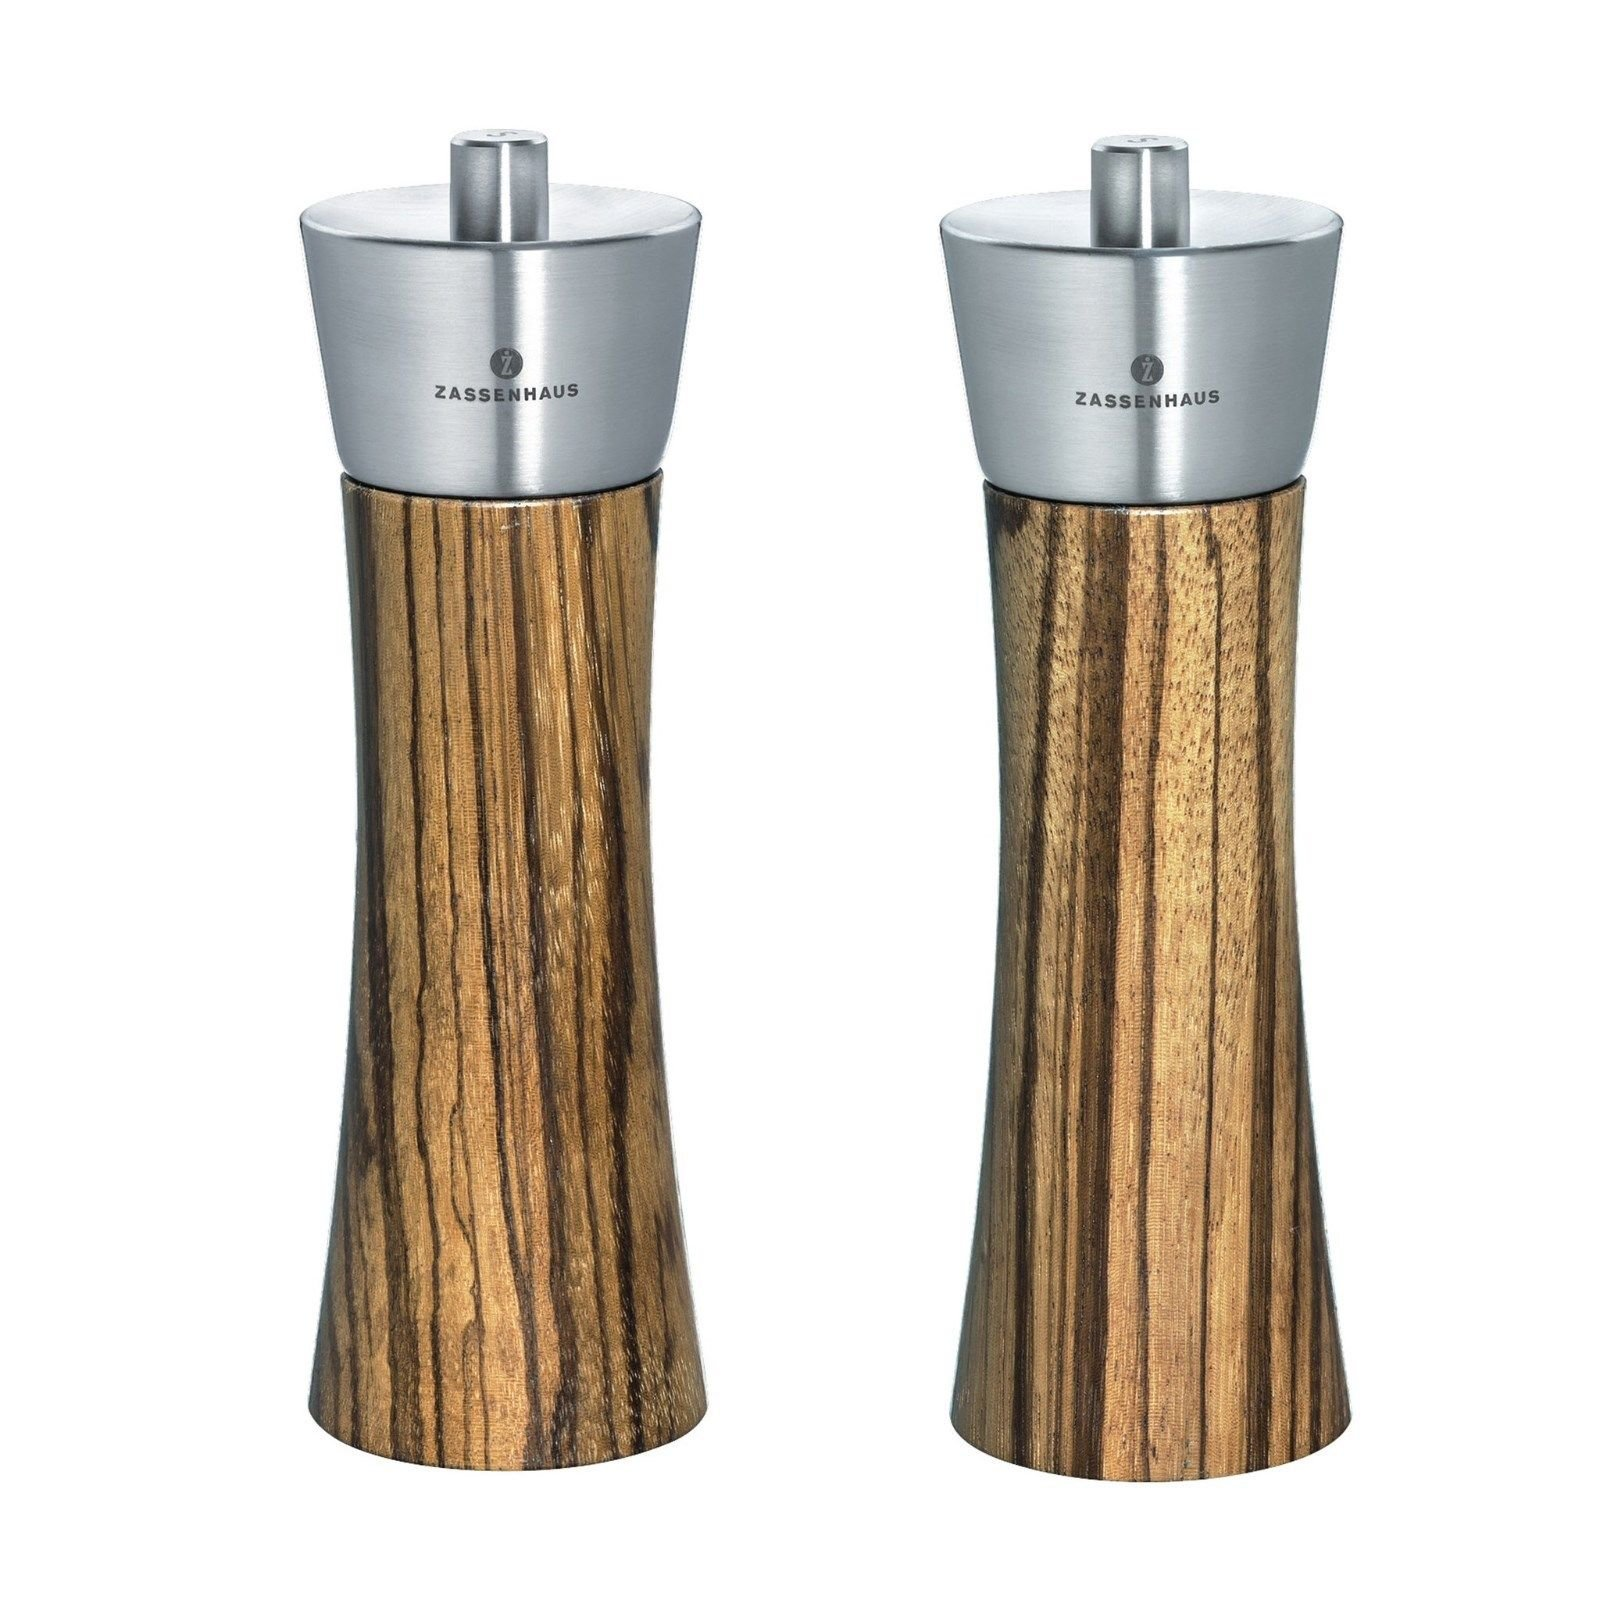 Zassenhaus Augsburg 7'' Zebrano Wood Salt & Pepper Mill / Grinder Set